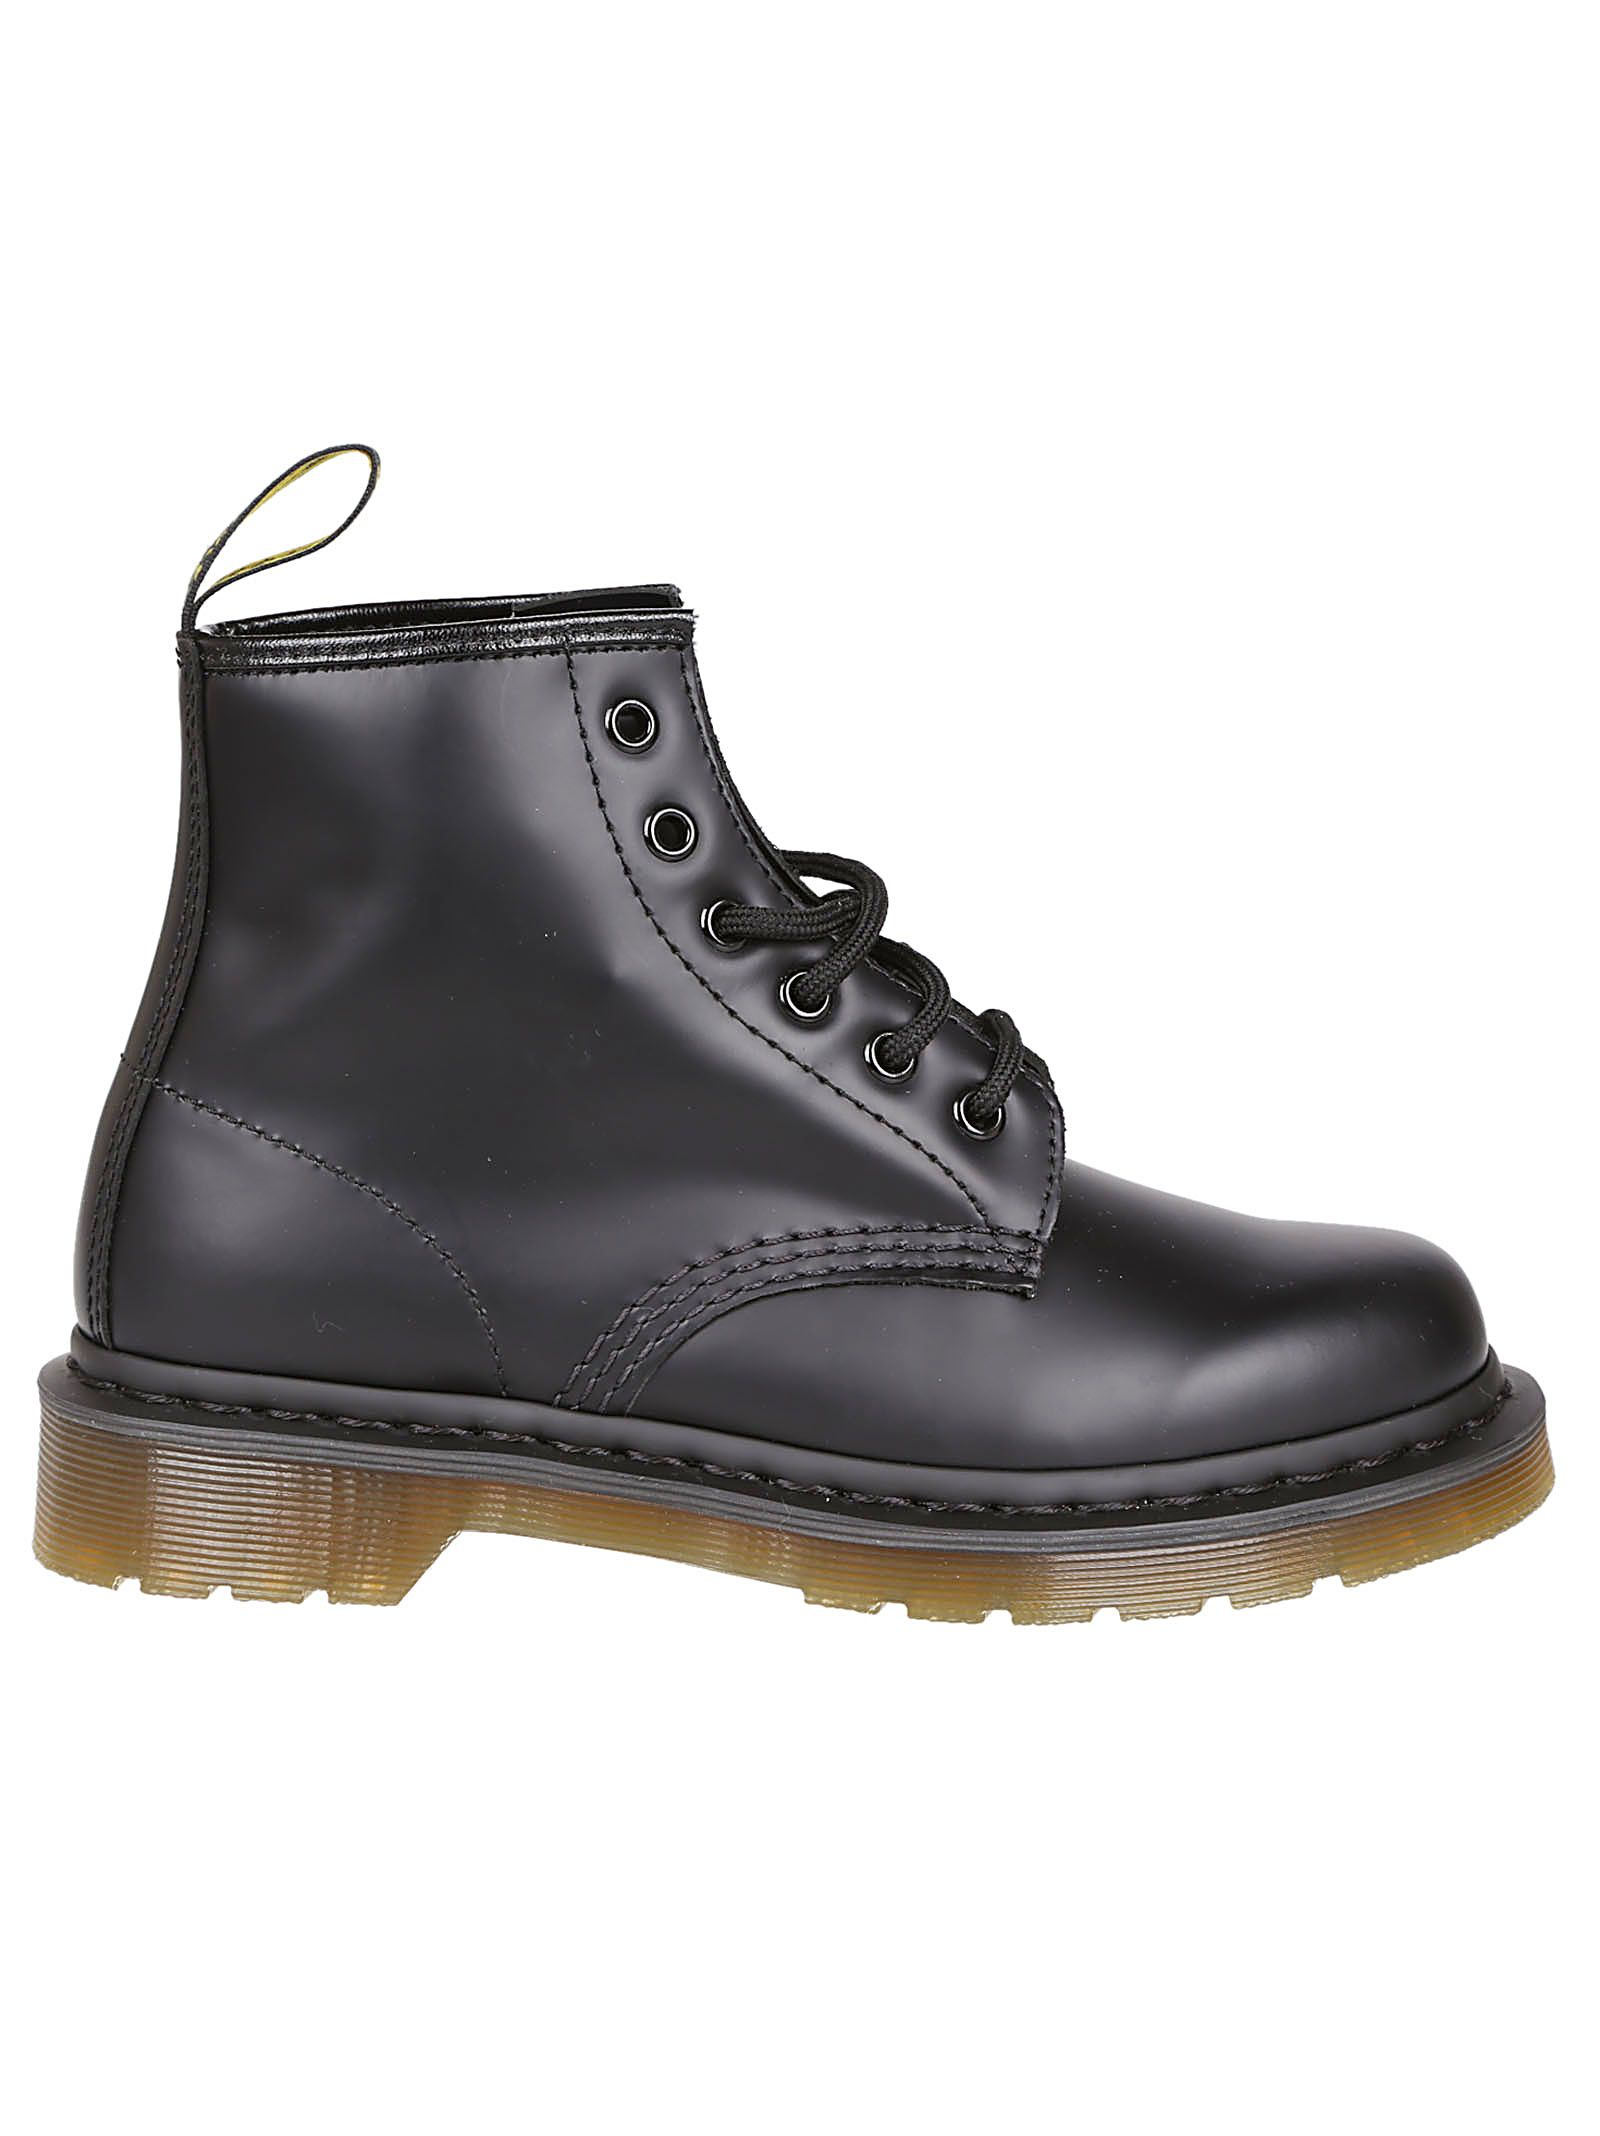 75b9256e8a italist | Best price in the market for Dr. Martens Dr.martens ...